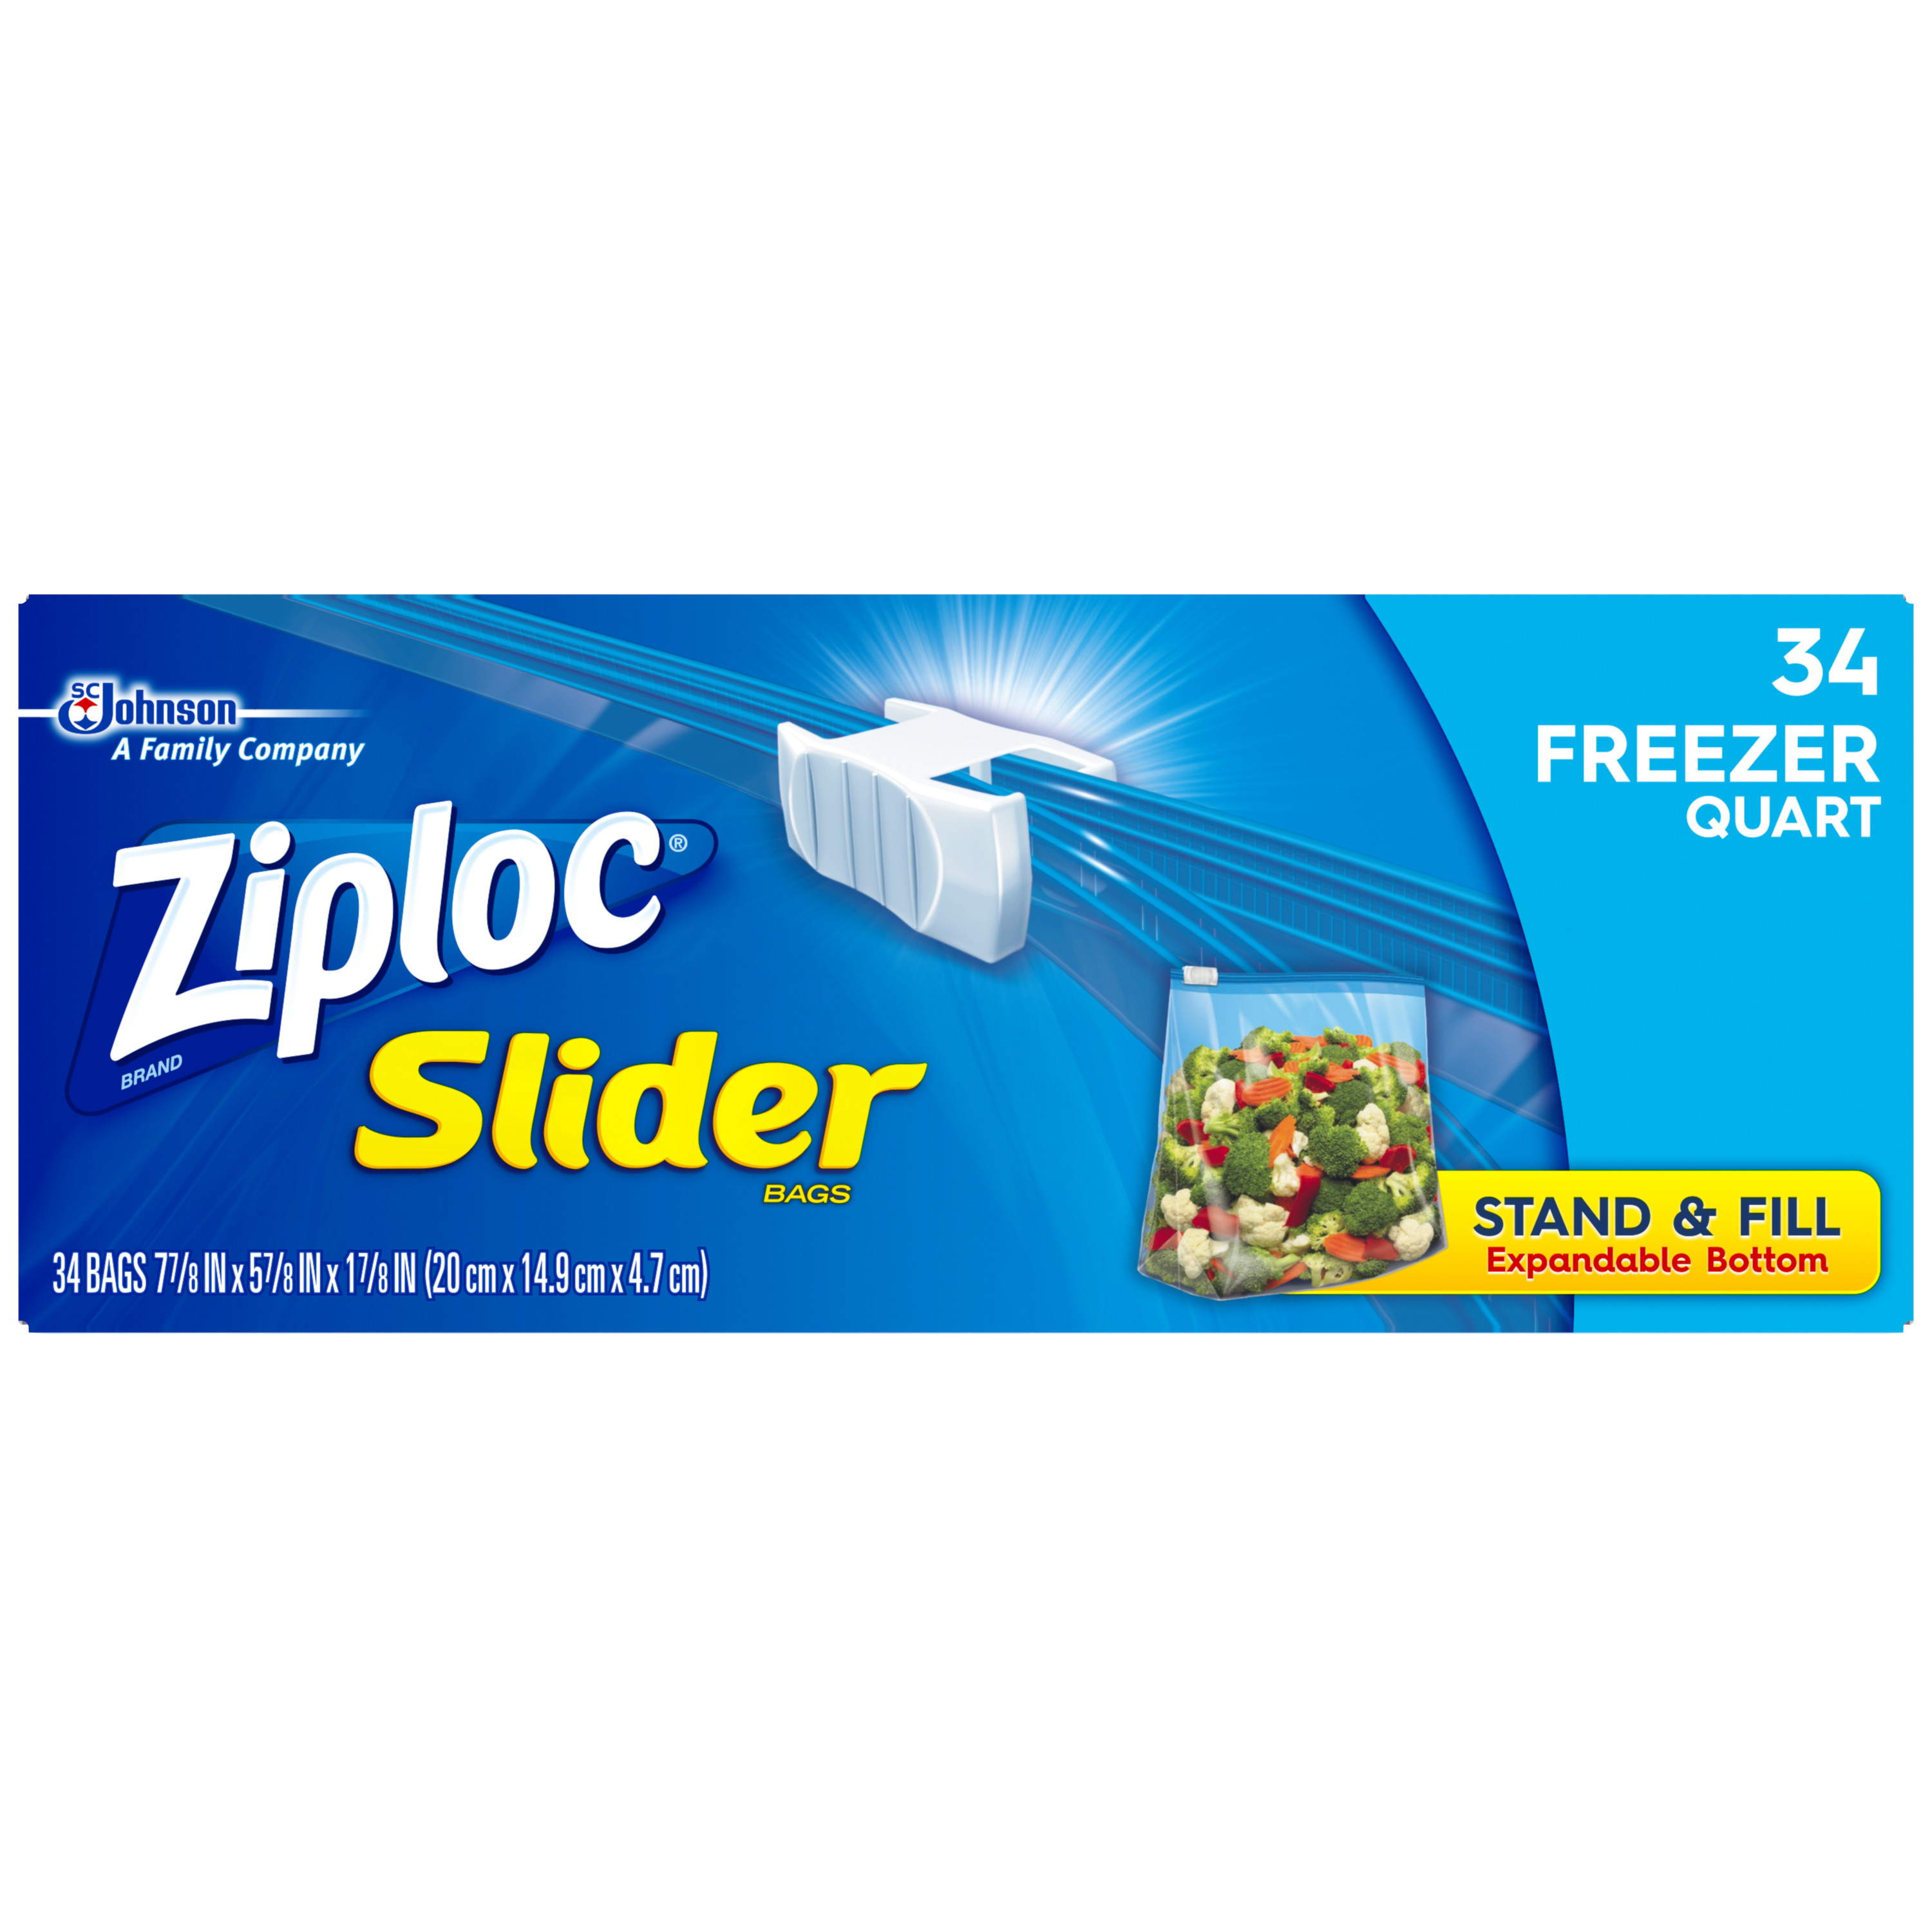 Ziploc Slider Freezer Quart Value Pack 34 Count